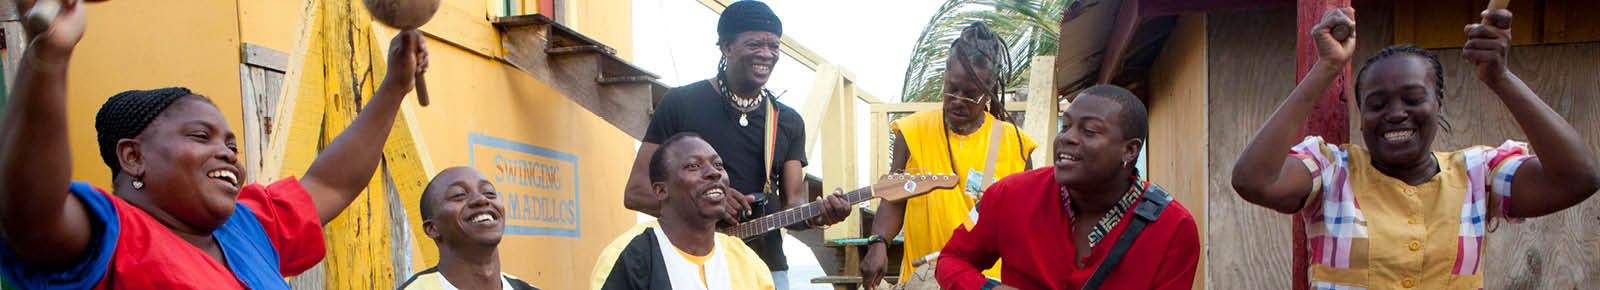 Garifuna Collective featuring Umalali